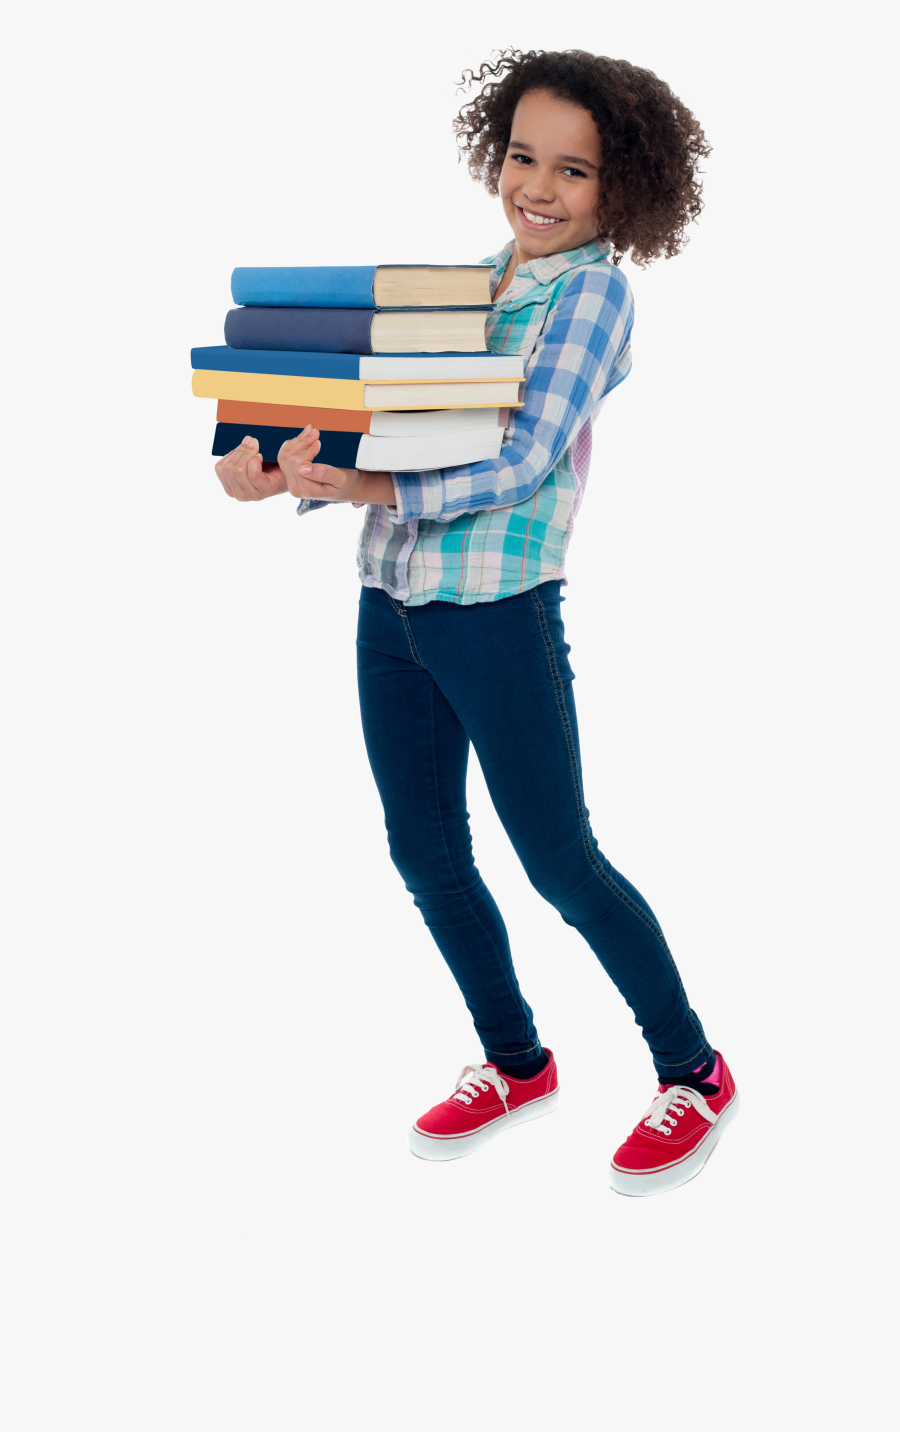 Young Girl Student Png Image - Girls With Book Png, Transparent Clipart